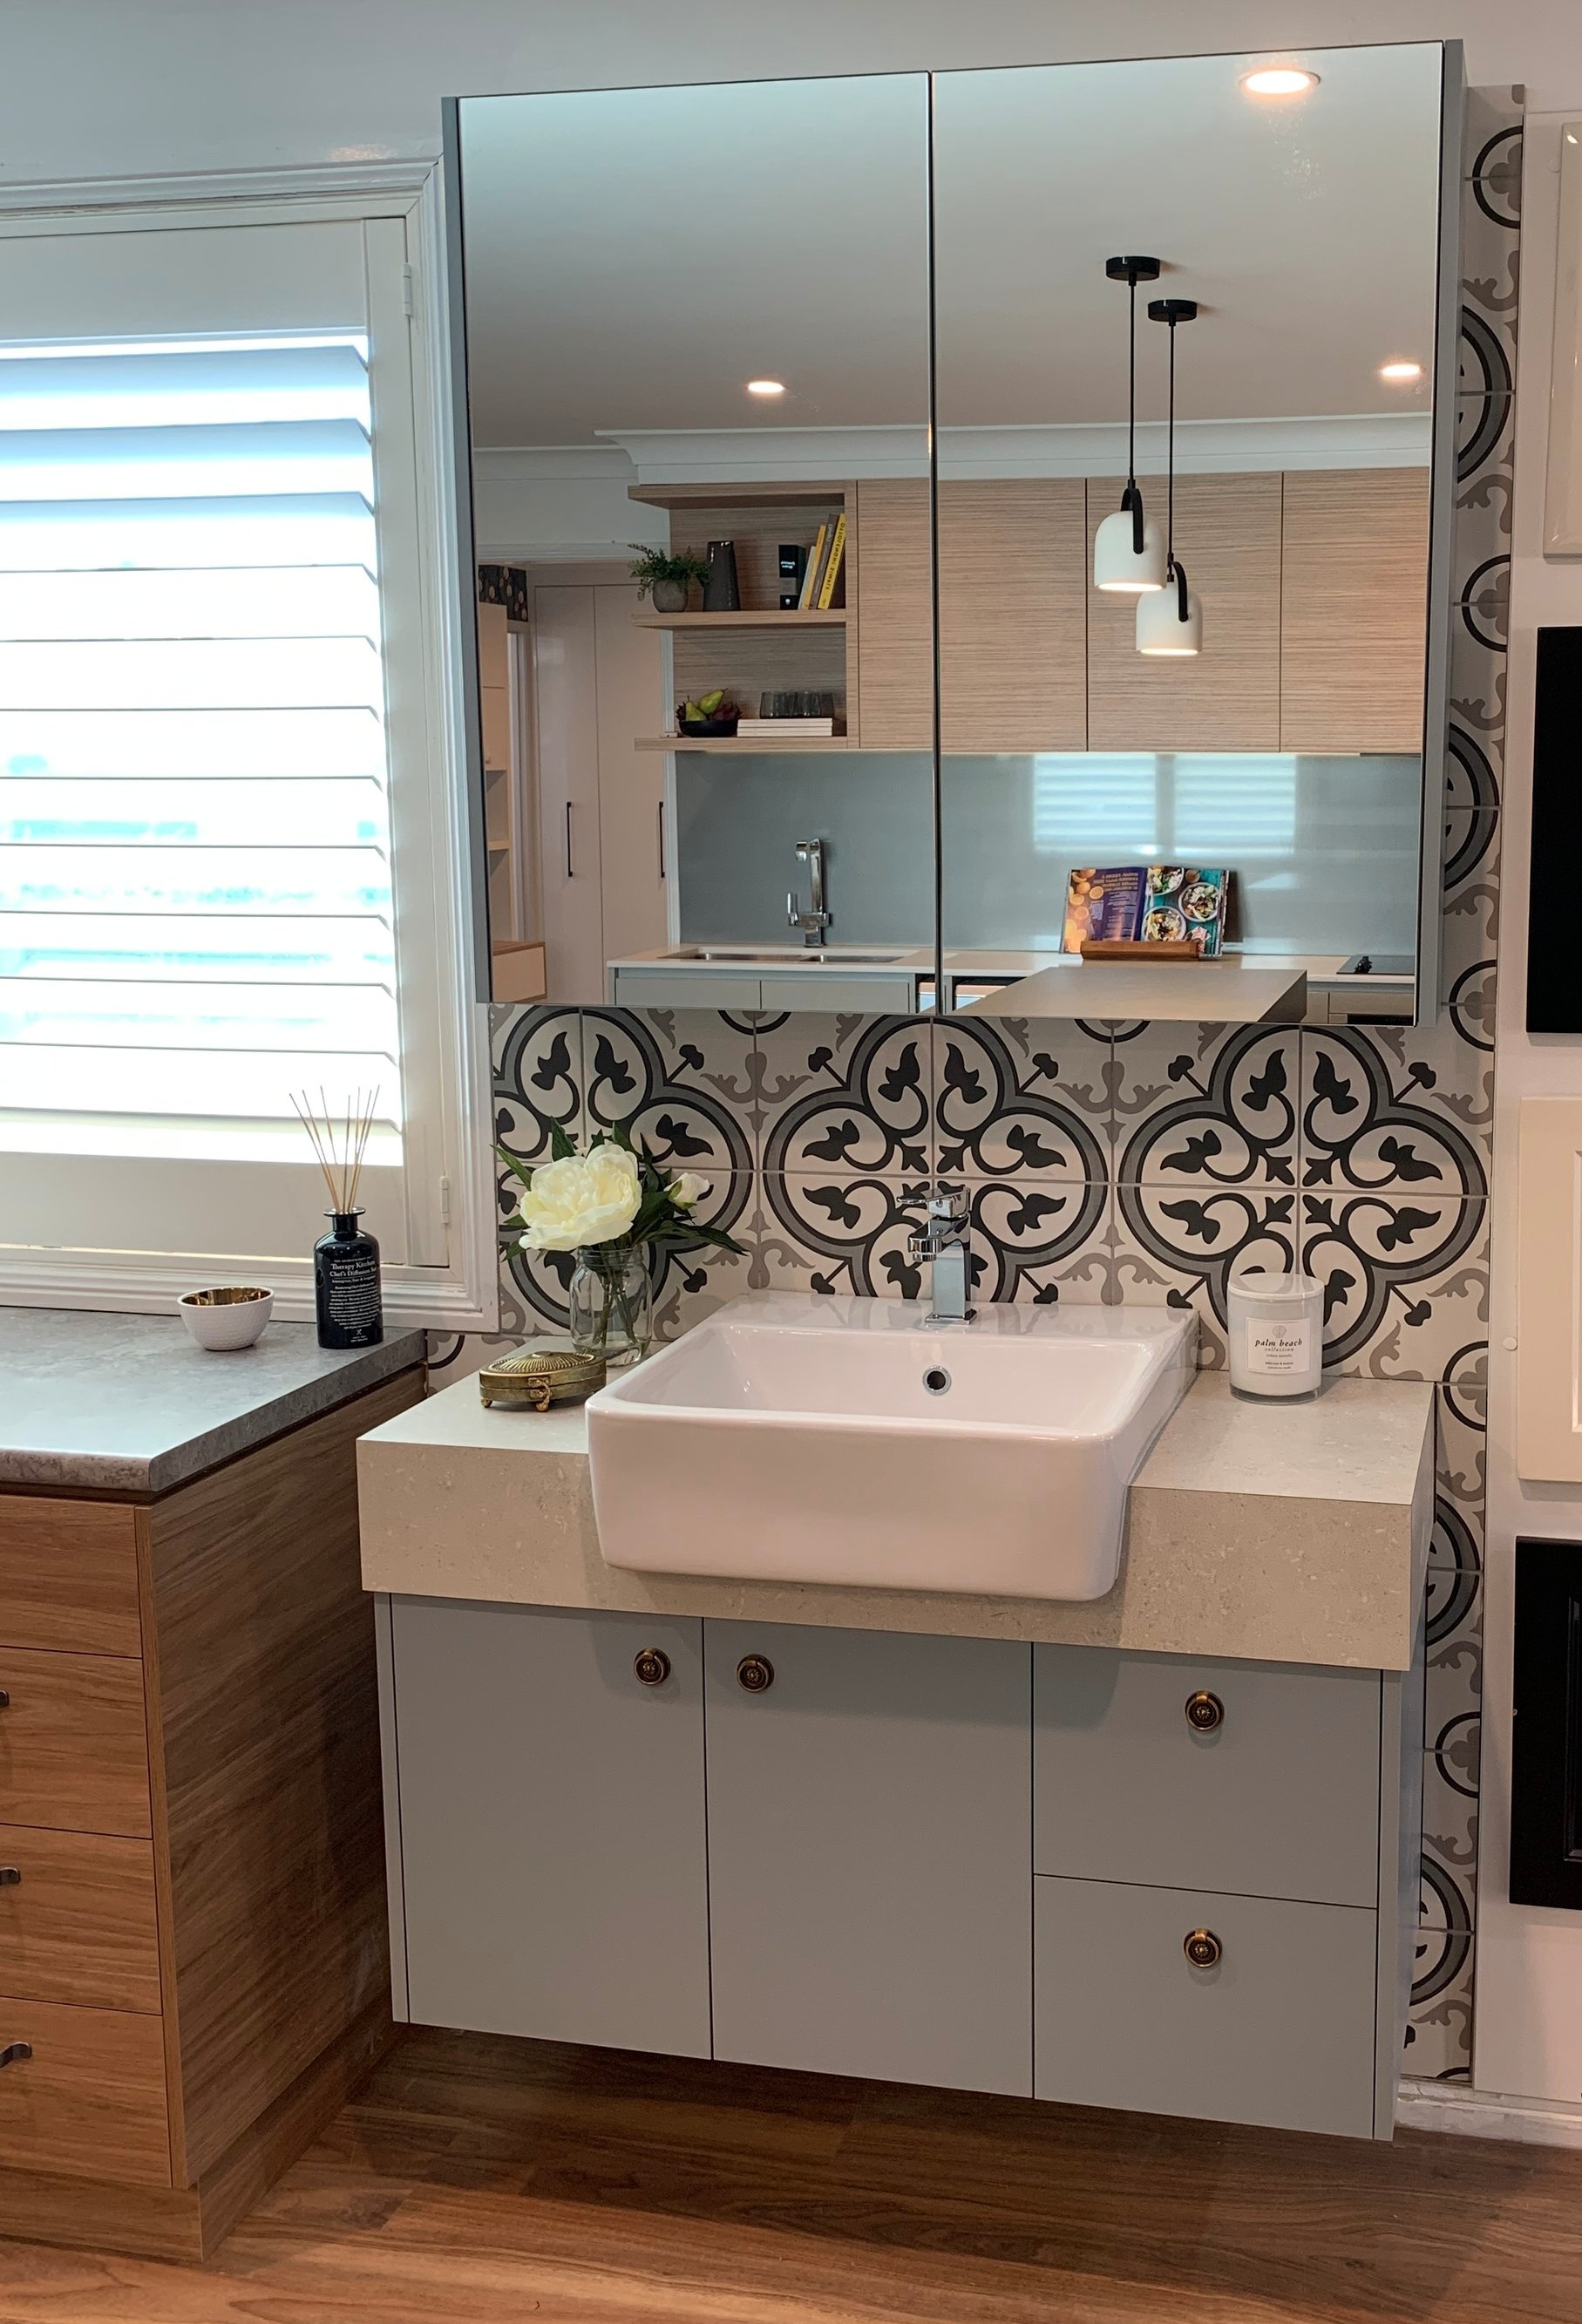 Semi Recessed Vanity - Bench Top: Laminex Abyssian Stone Natural (square edge)Cupboards: Laminex Bluegrass NaturalHandles: Handle House K64 Royale Ring Pulls K64-S